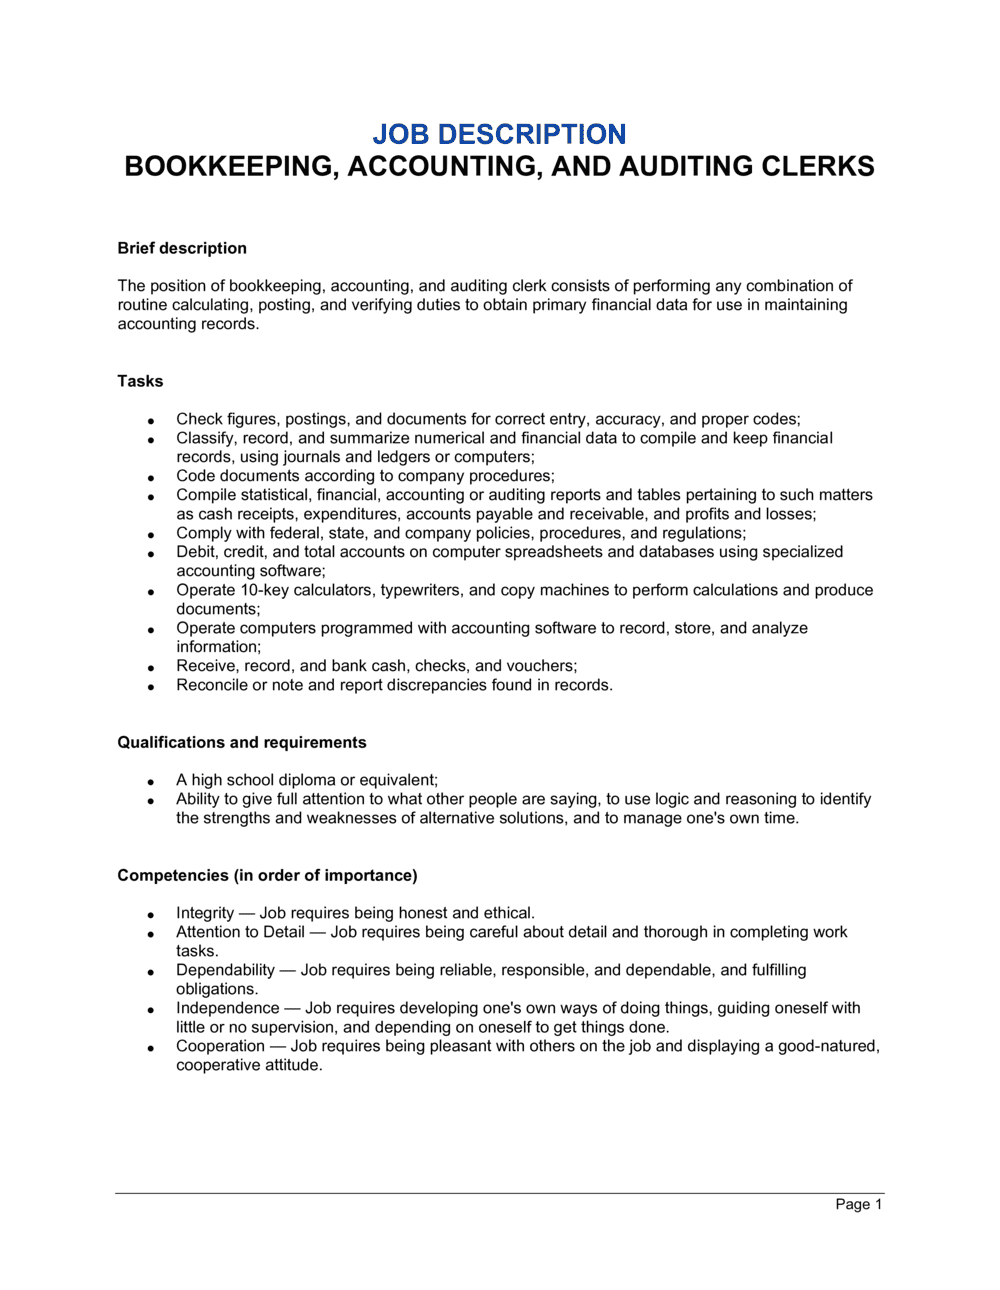 Business-in-a-Box's Bookkeeping, Accounting and Auditing Clerk Job Description Template